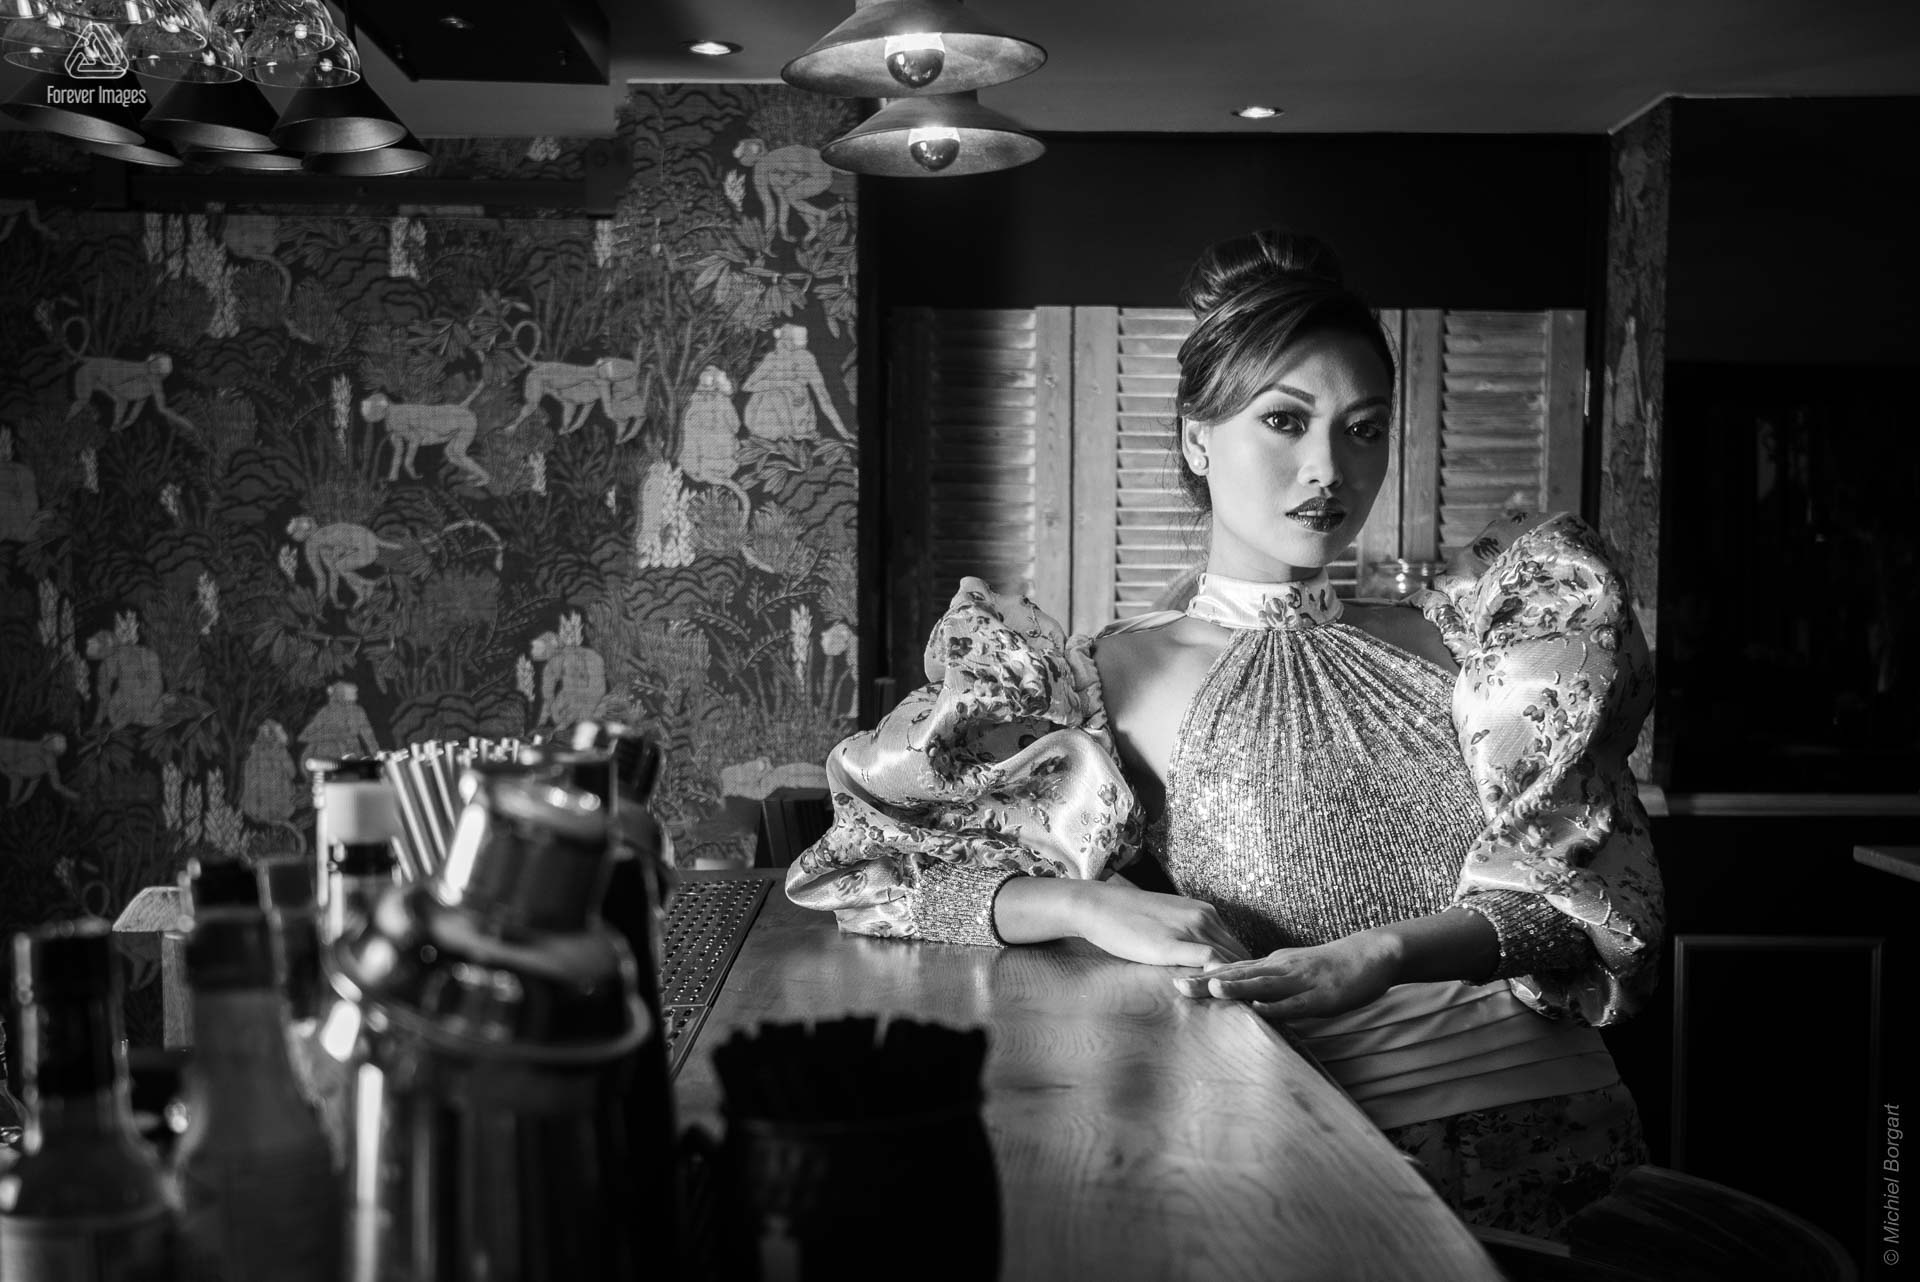 Portrait photo black and white at bar | Carolyn Collinda Ronald Rizzo Vicky Foundation Zimmerman Erica Gil | Fashion Photographer Michiel Borgart - Forever Images.